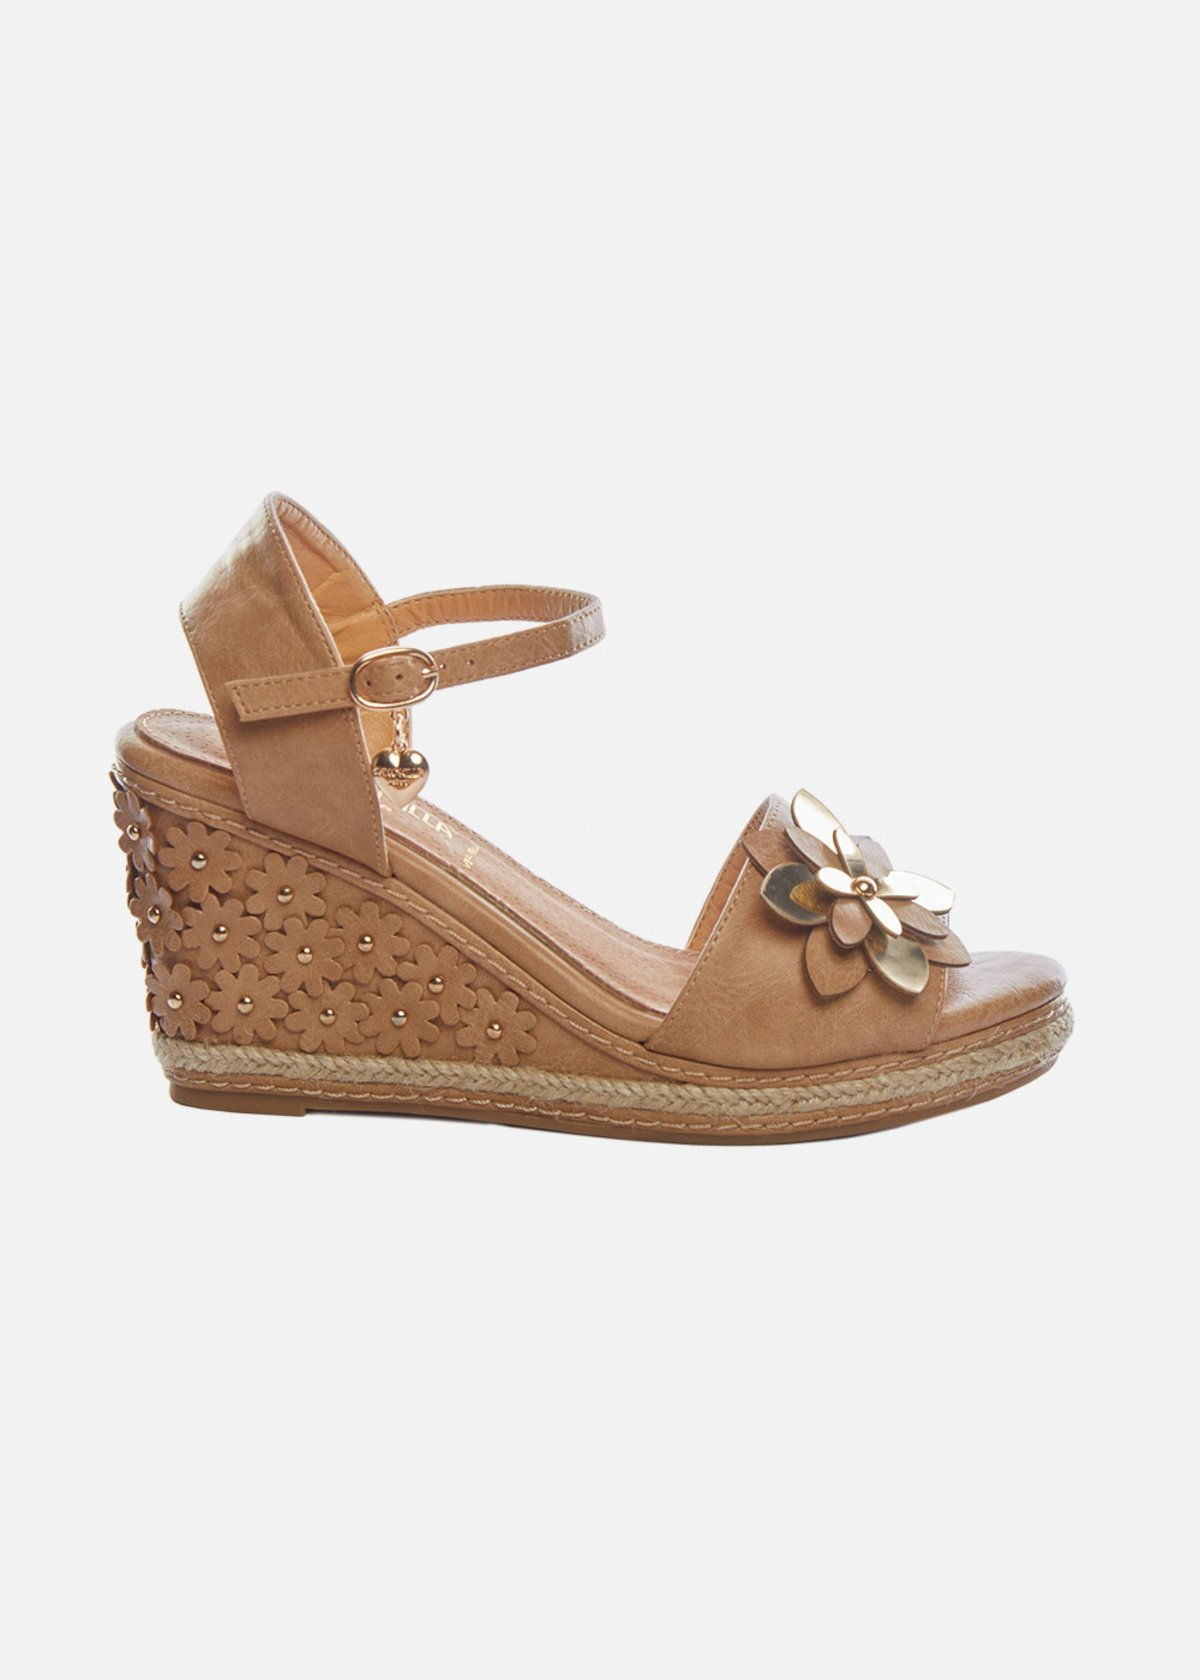 Sflora sandals with flower applications on the wedge - Desert